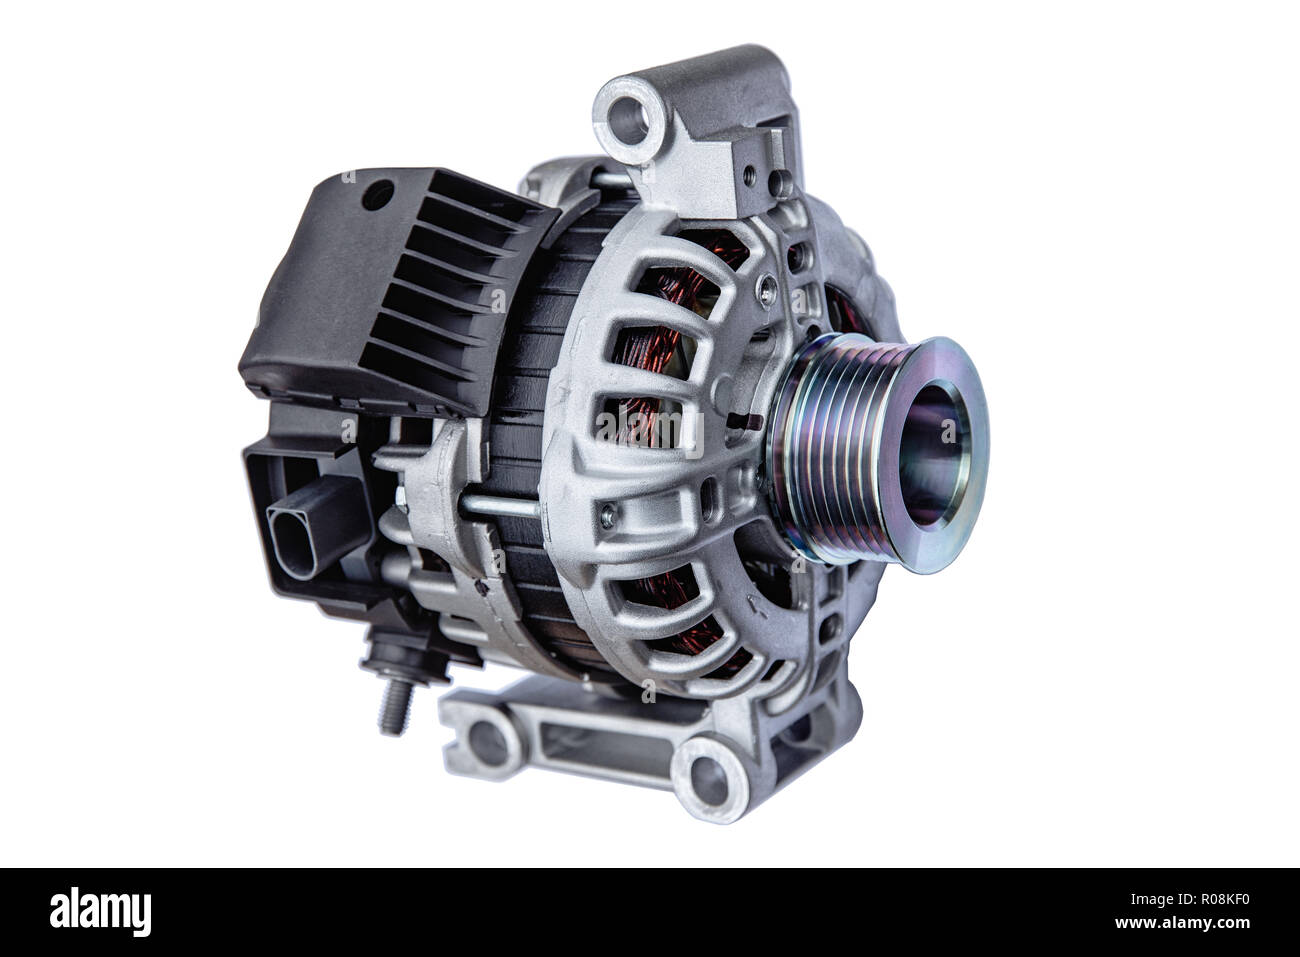 Car Alternator High Resolution Stock Photography And Images Alamy